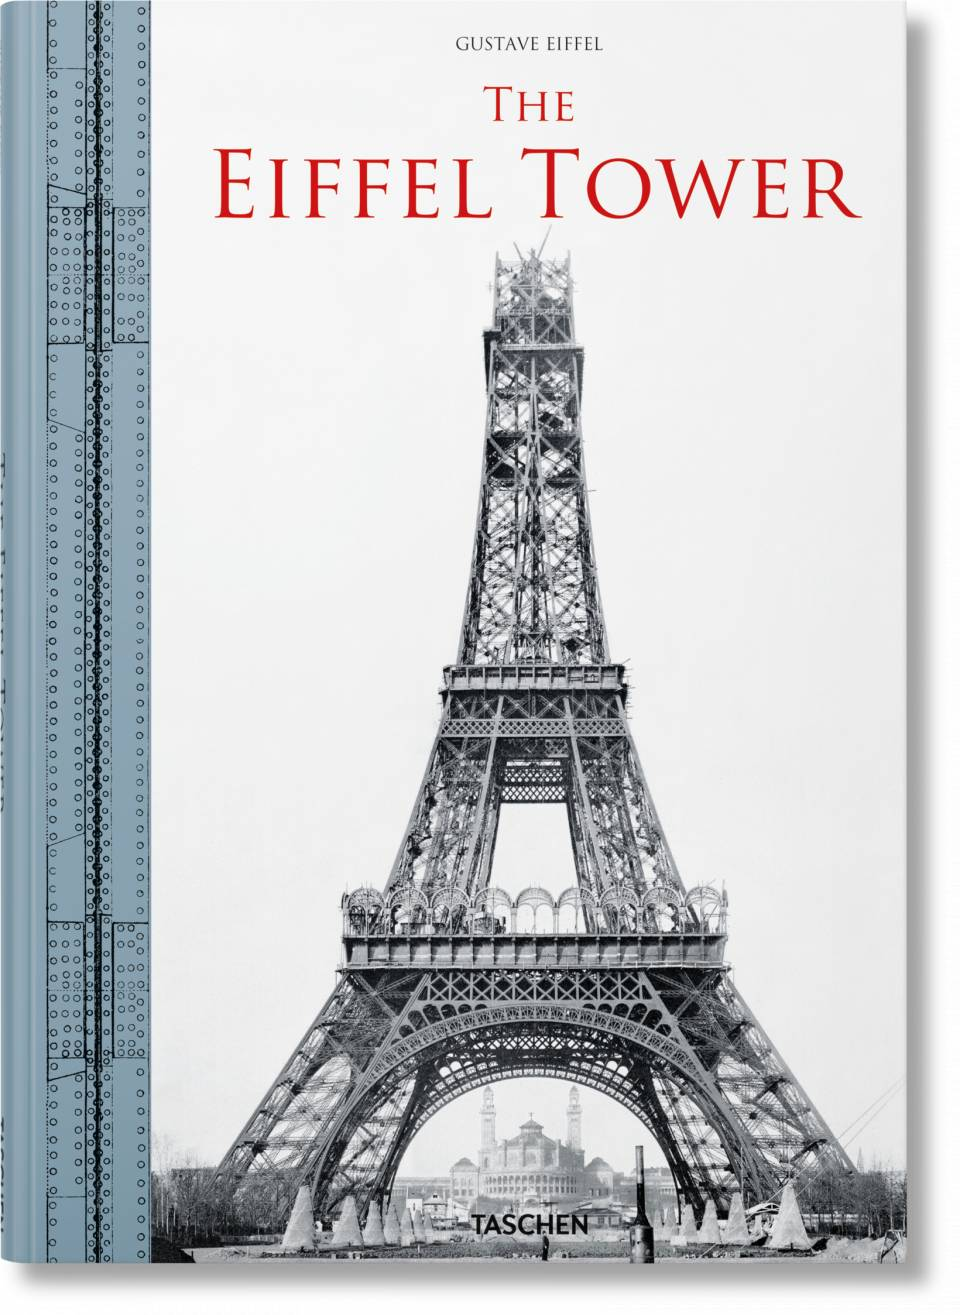 The Eiffel Tower - image 1